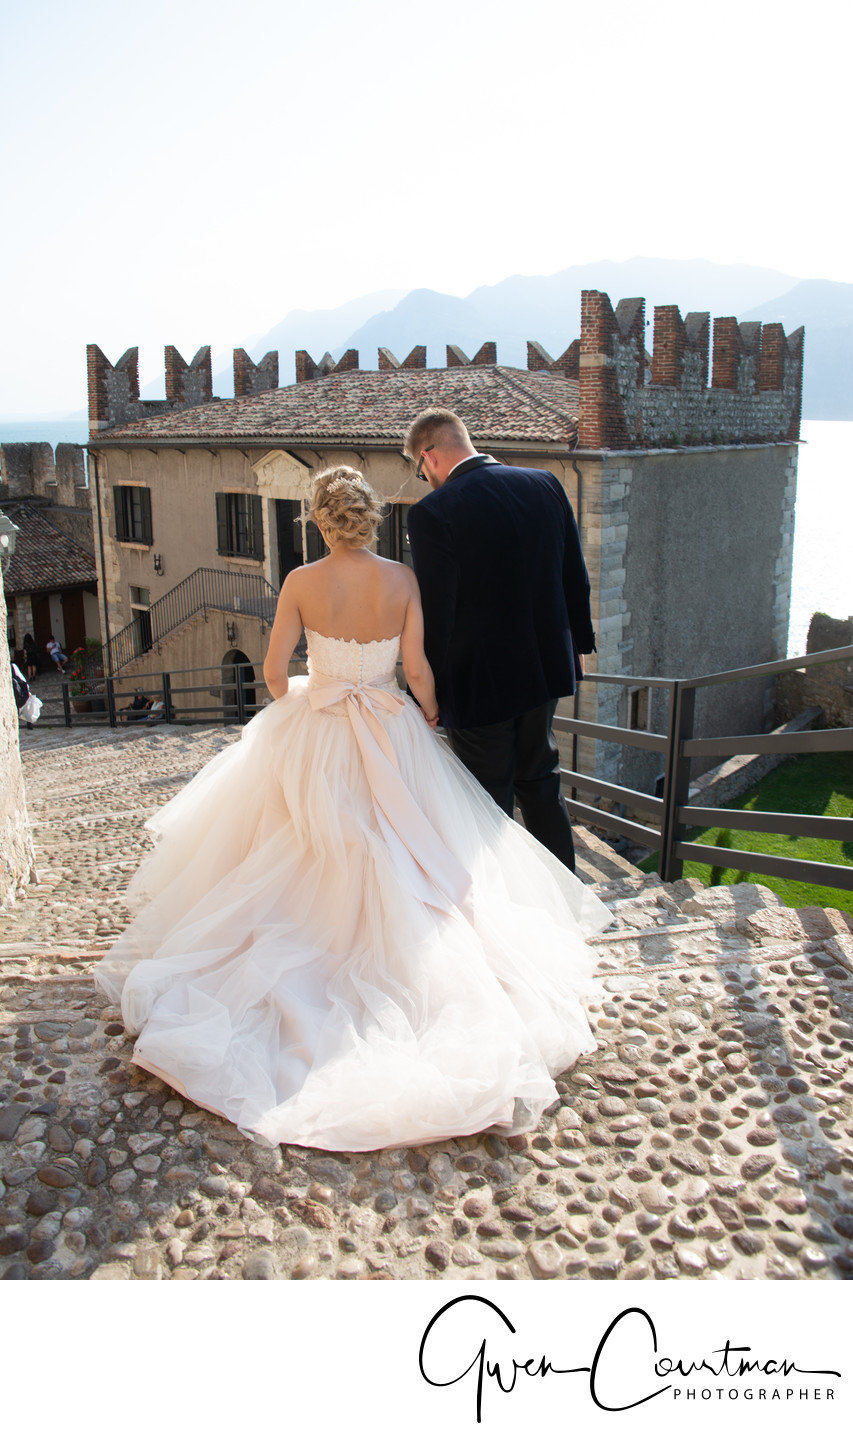 Stunning wedding venues in Italy.